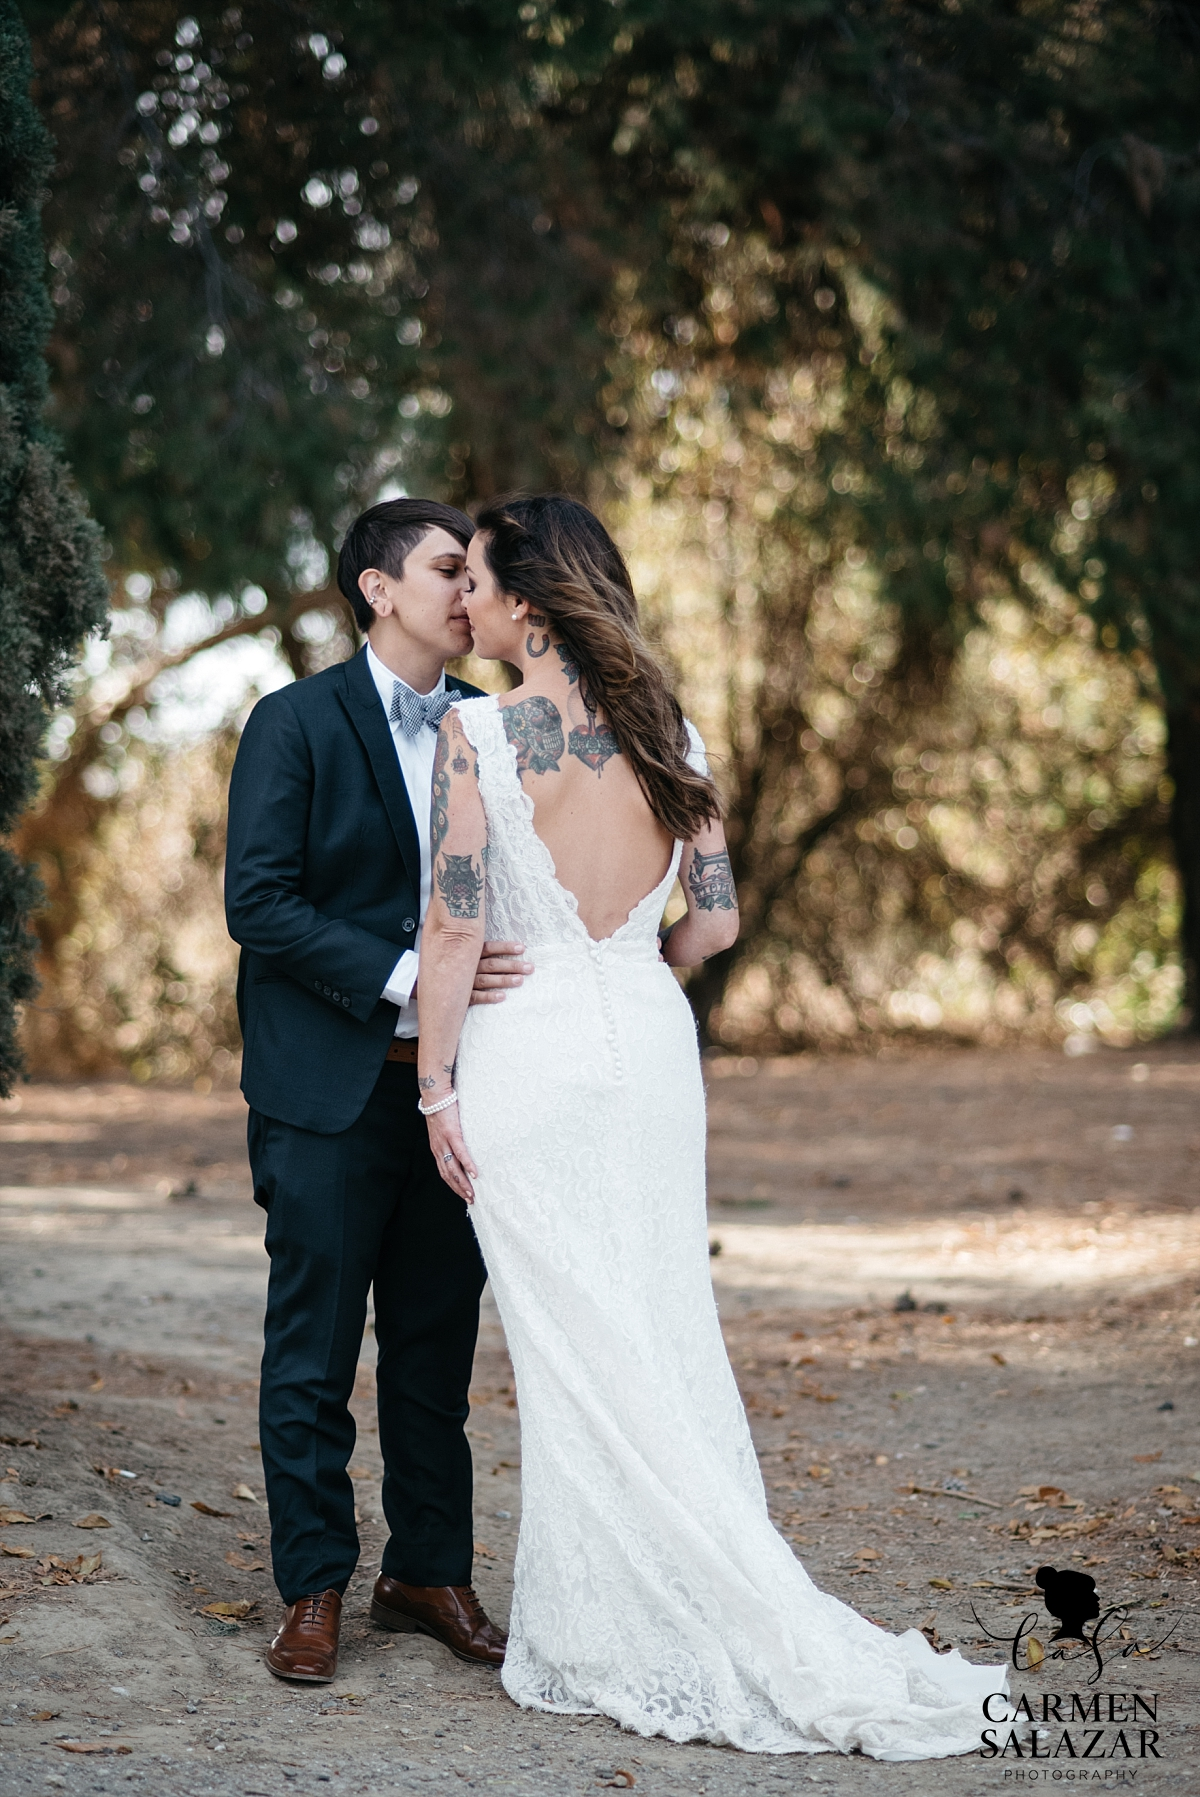 LGBTQ California alternative wedding fashion - Carmen Salazar